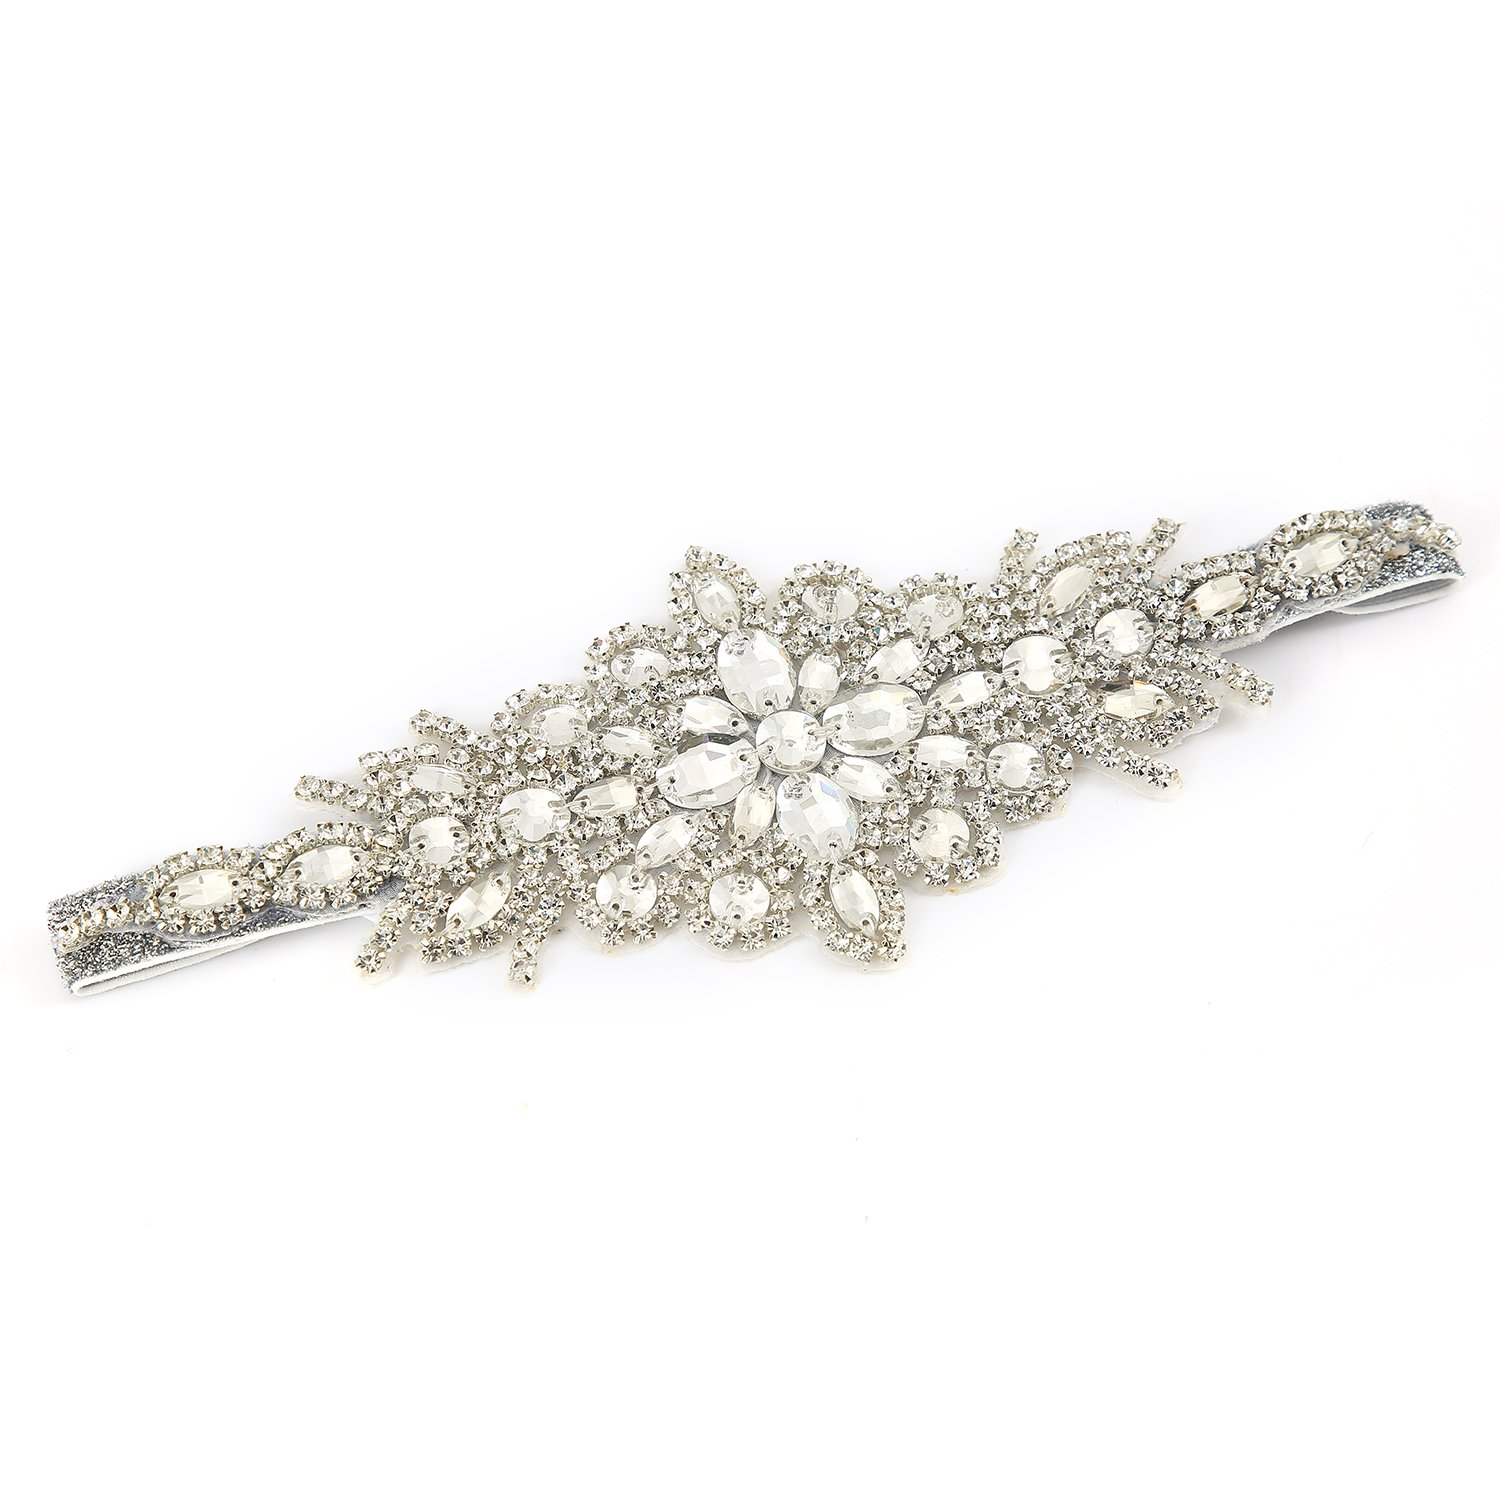 1920s Flapper Headband, Gatsby Headpiece, Wigs Metme Crystal Rhinestone Headband Retro Style Hair Accessories Satin Ribbon for 20s Event Party $17.99 AT vintagedancer.com